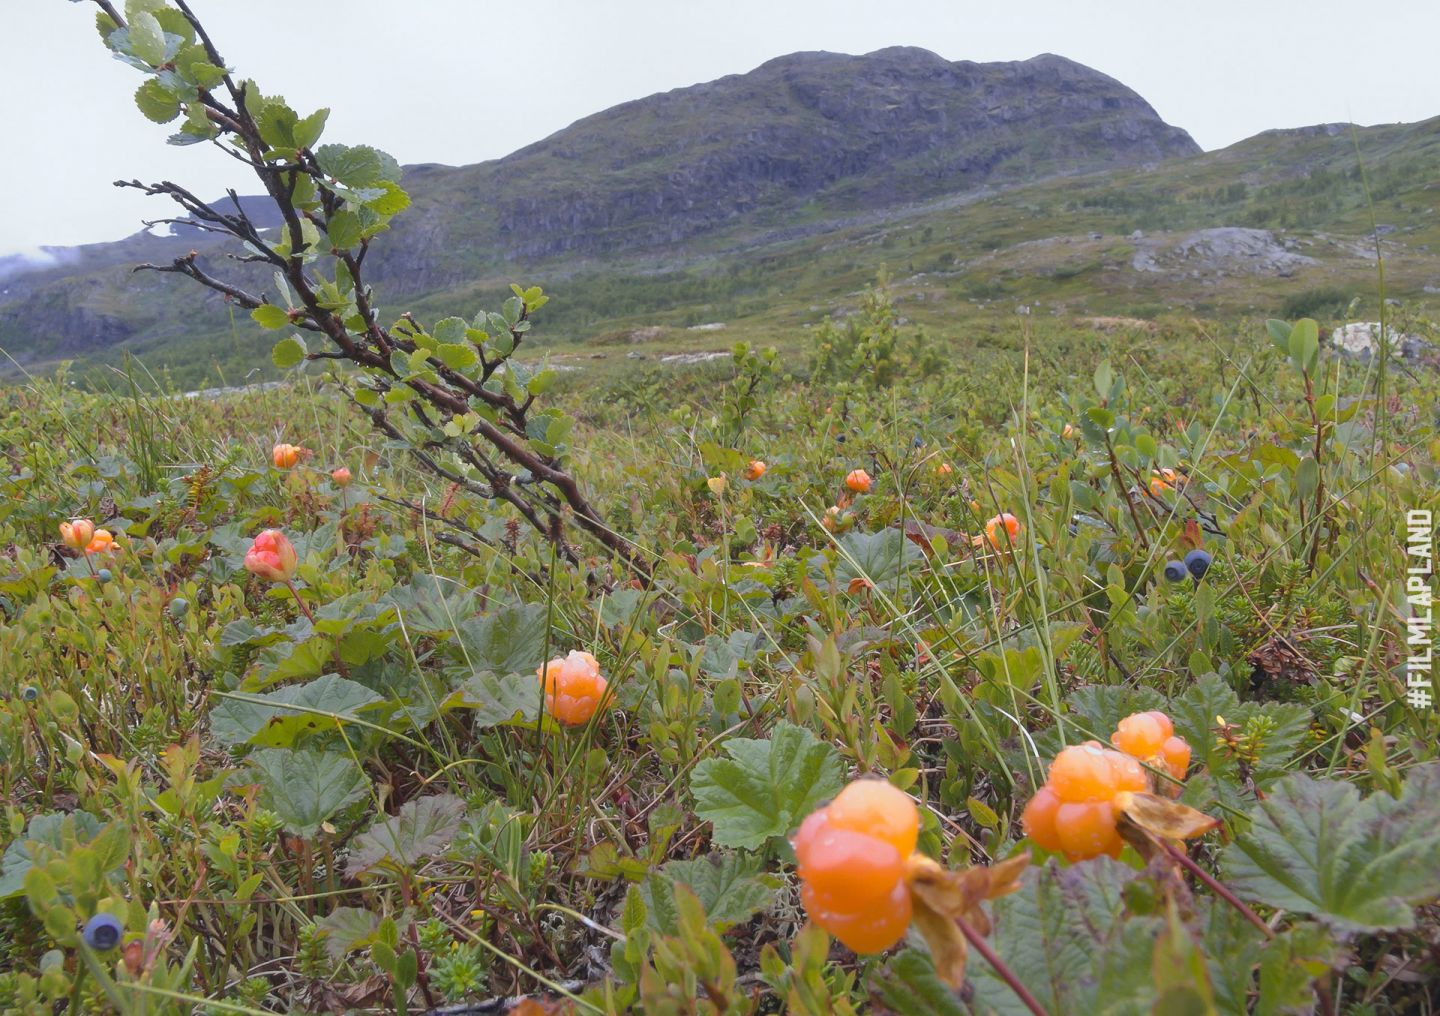 Cloudberries and blueberries in a bog in Lapland, Finland